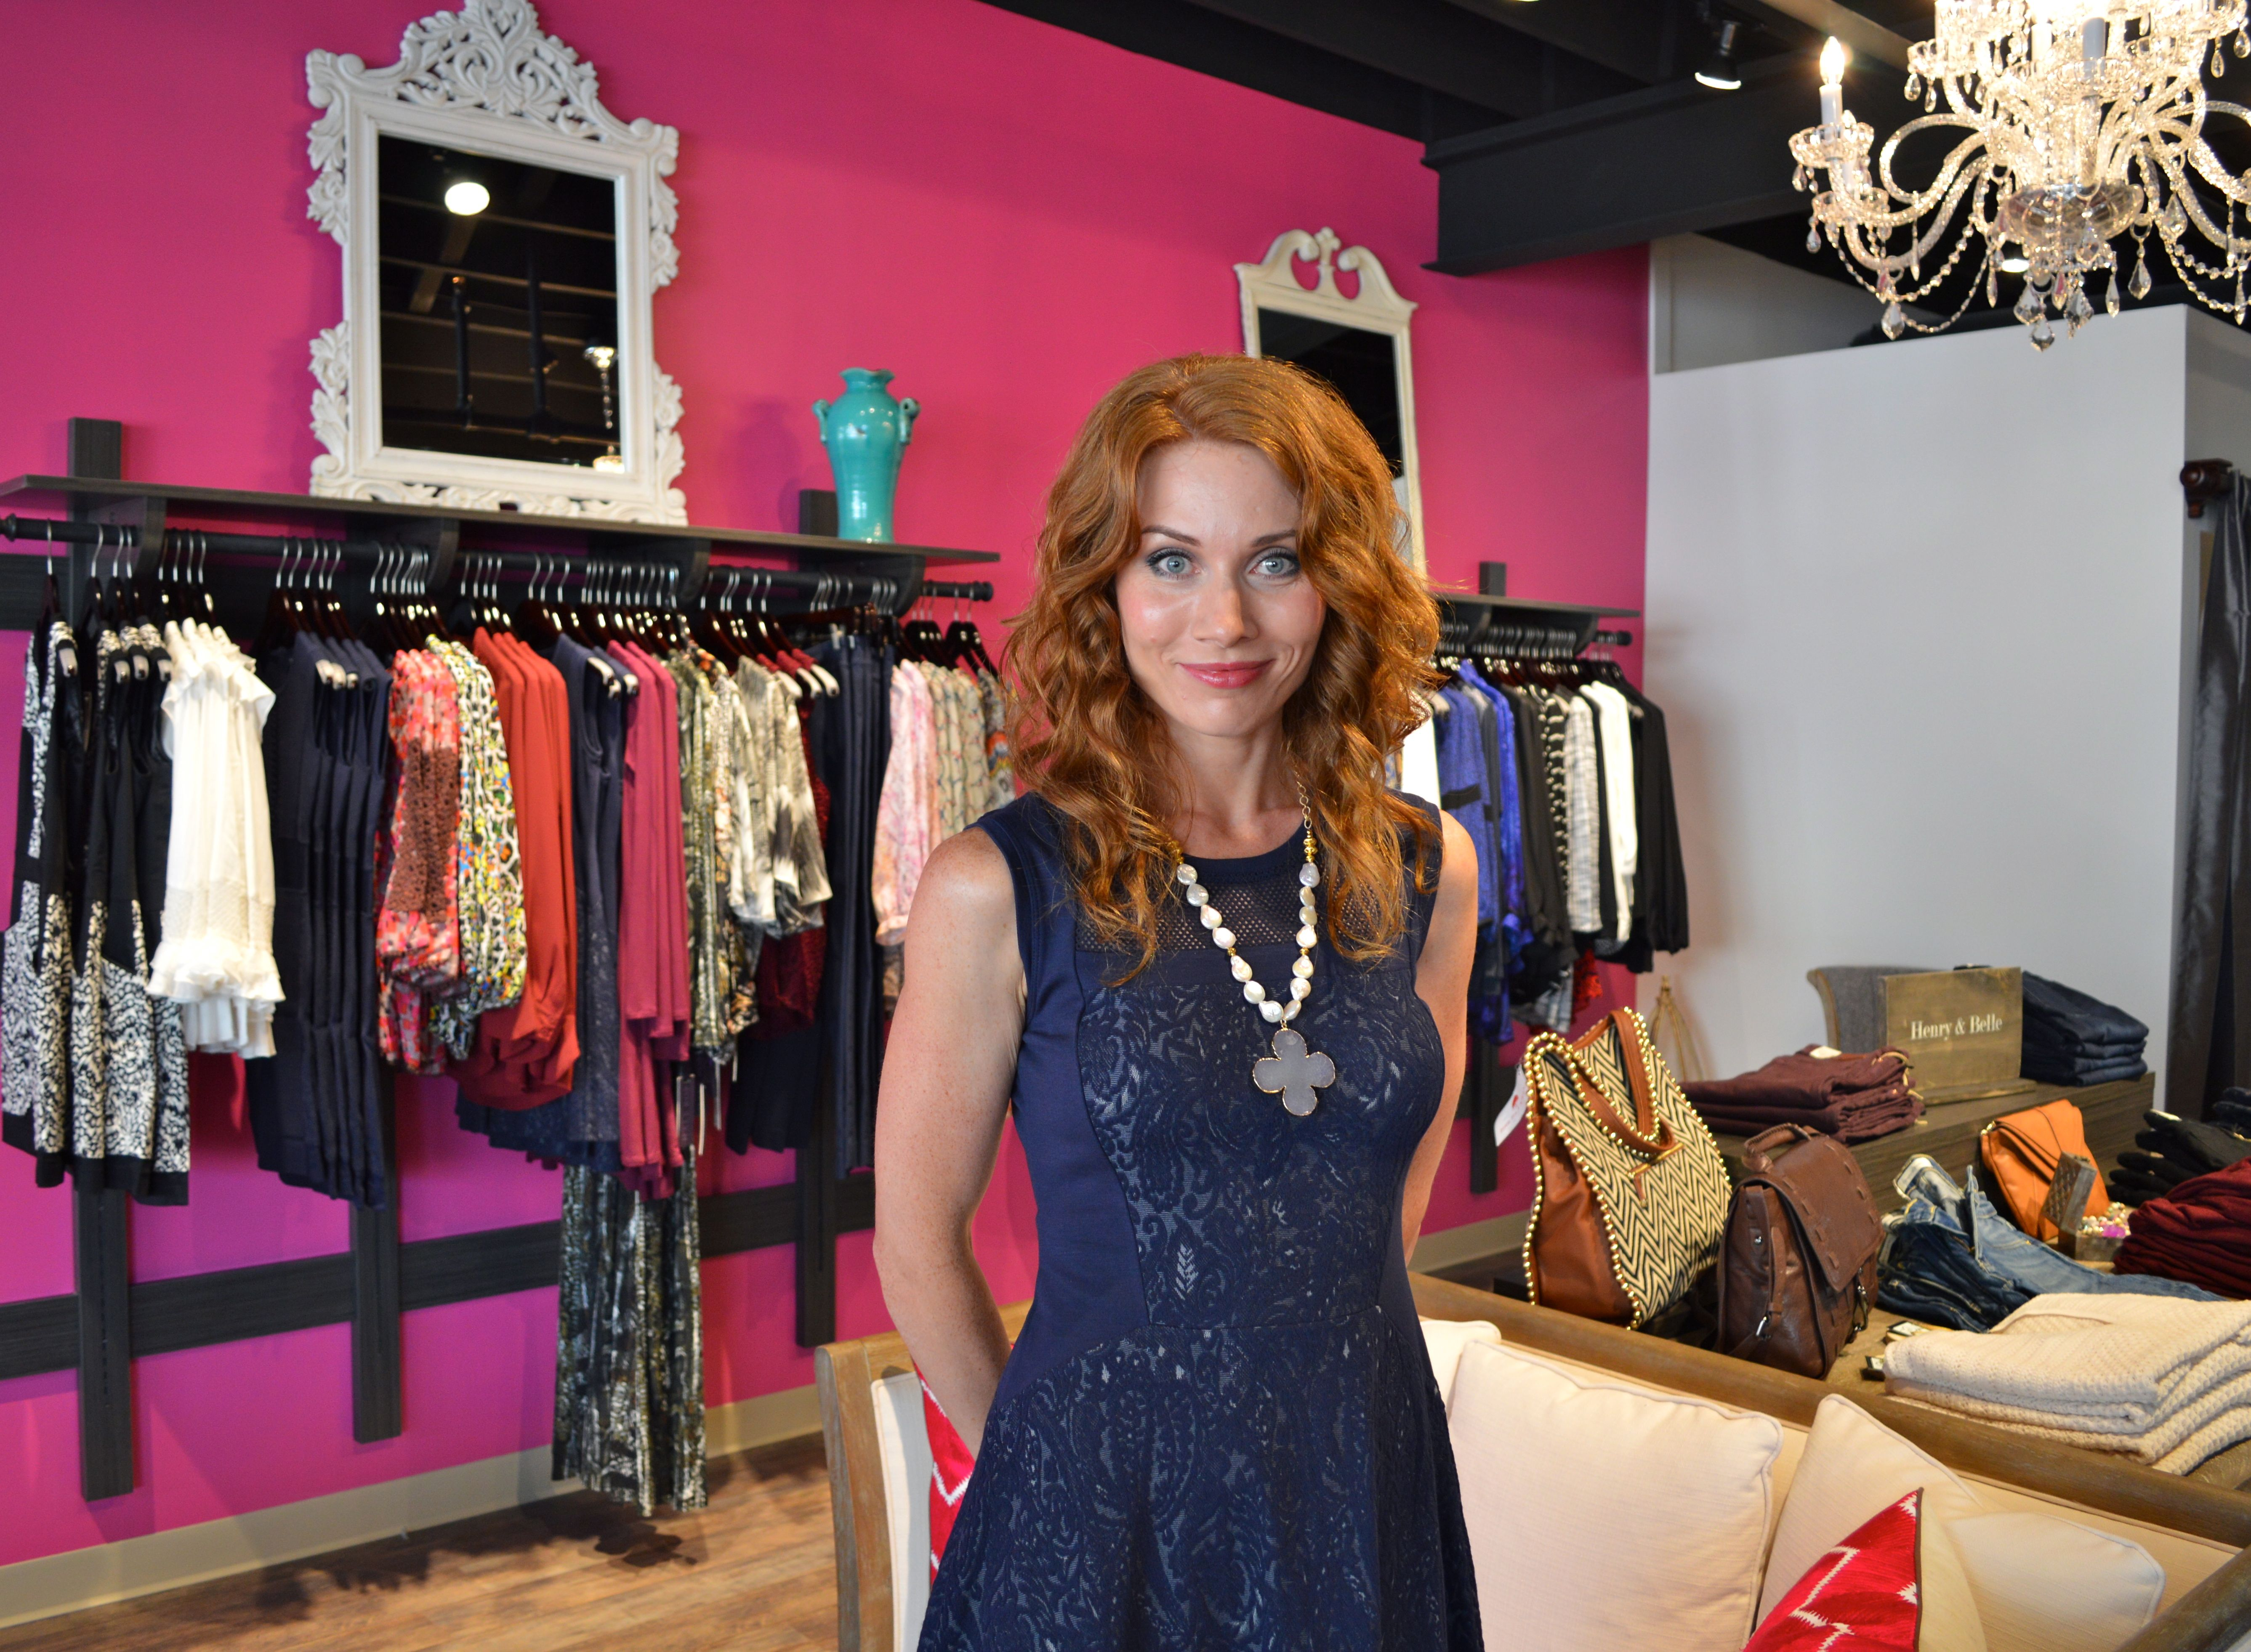 First-time boutique owner Elena Samane says she and her staff will offer friendly, no-pressure style advice and customer service.